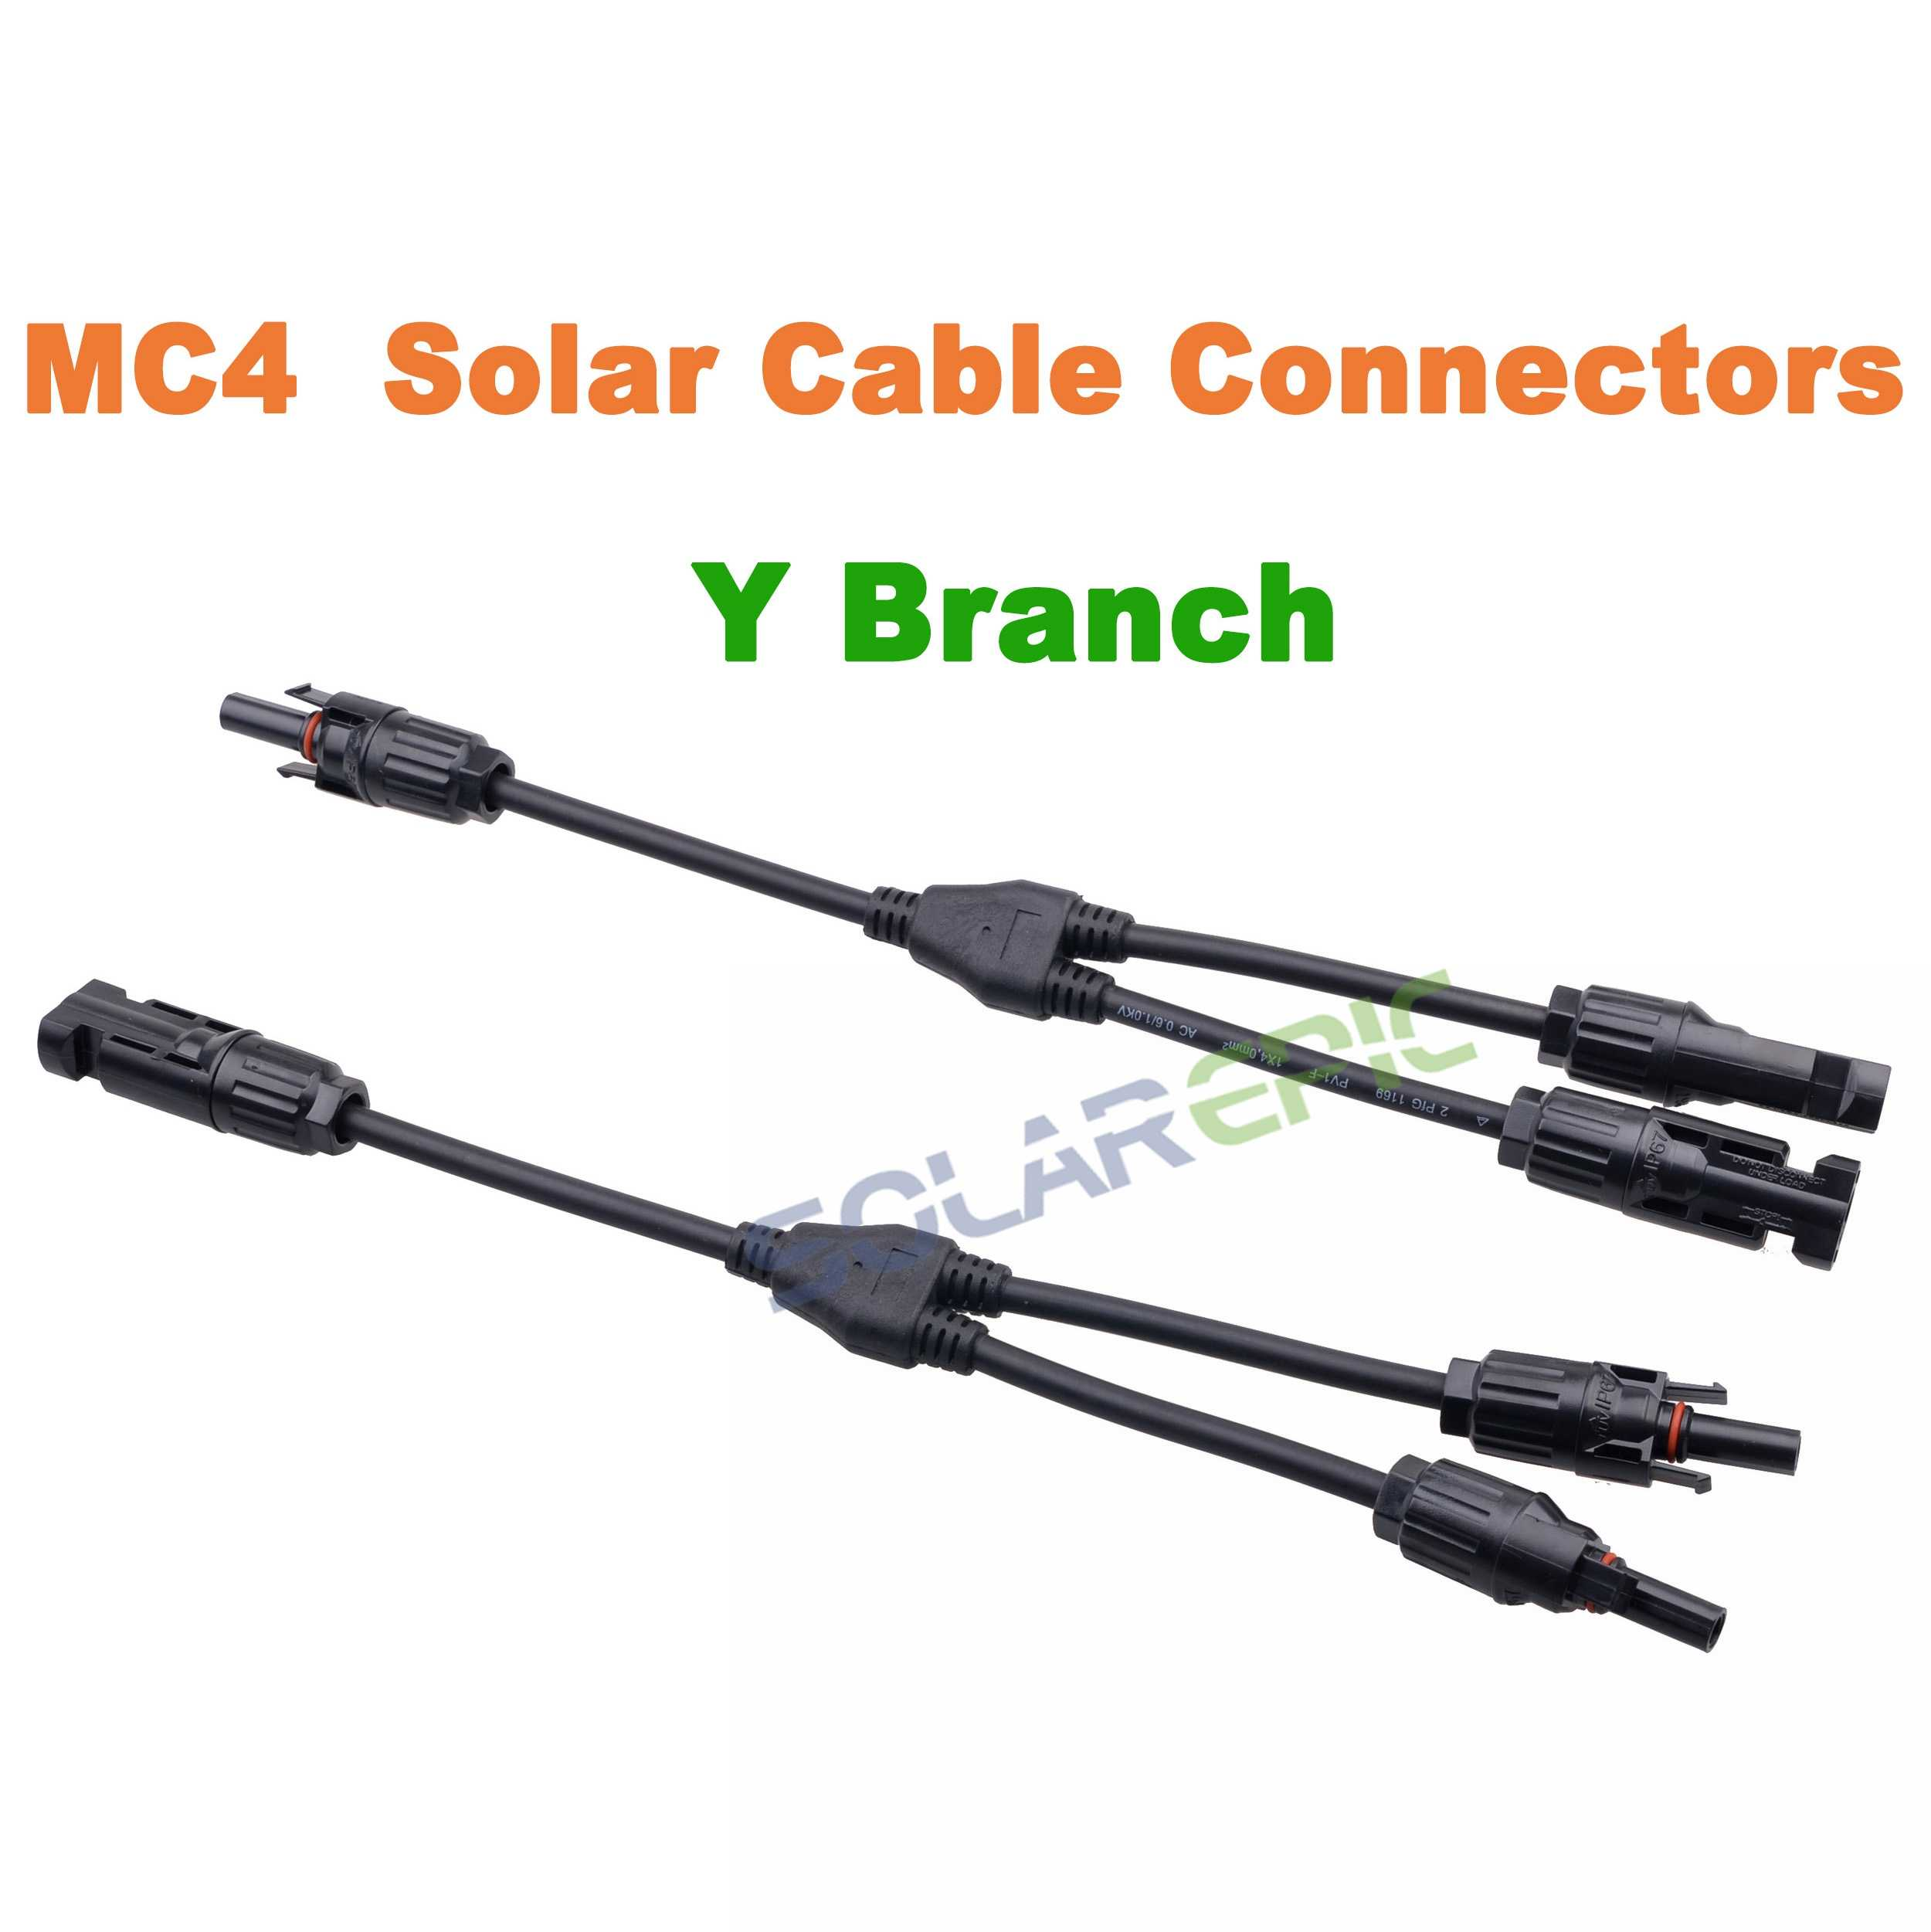 1 Pair MC4 Y Branch Connectors Cable Solar Panel Cable Connector MC4 Cable Conectores MC4 Solar Panel Cable Connector Waterproof